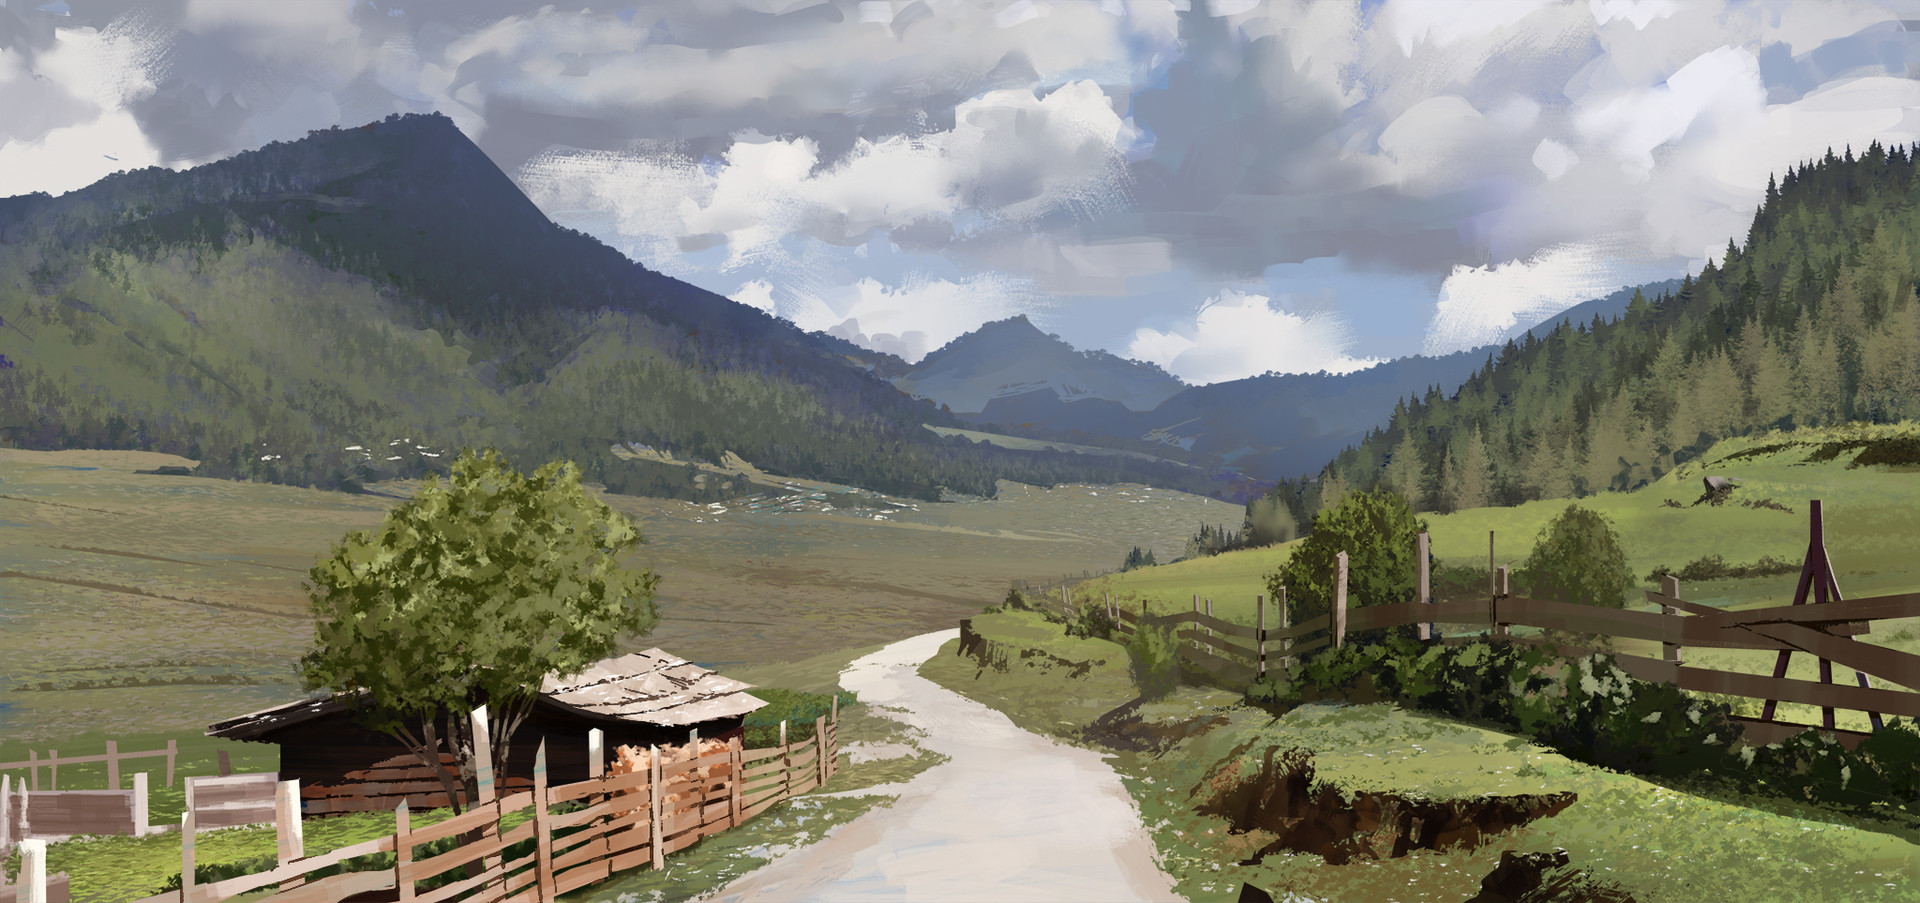 Jack eaves virtual pleinair 02 bhutan